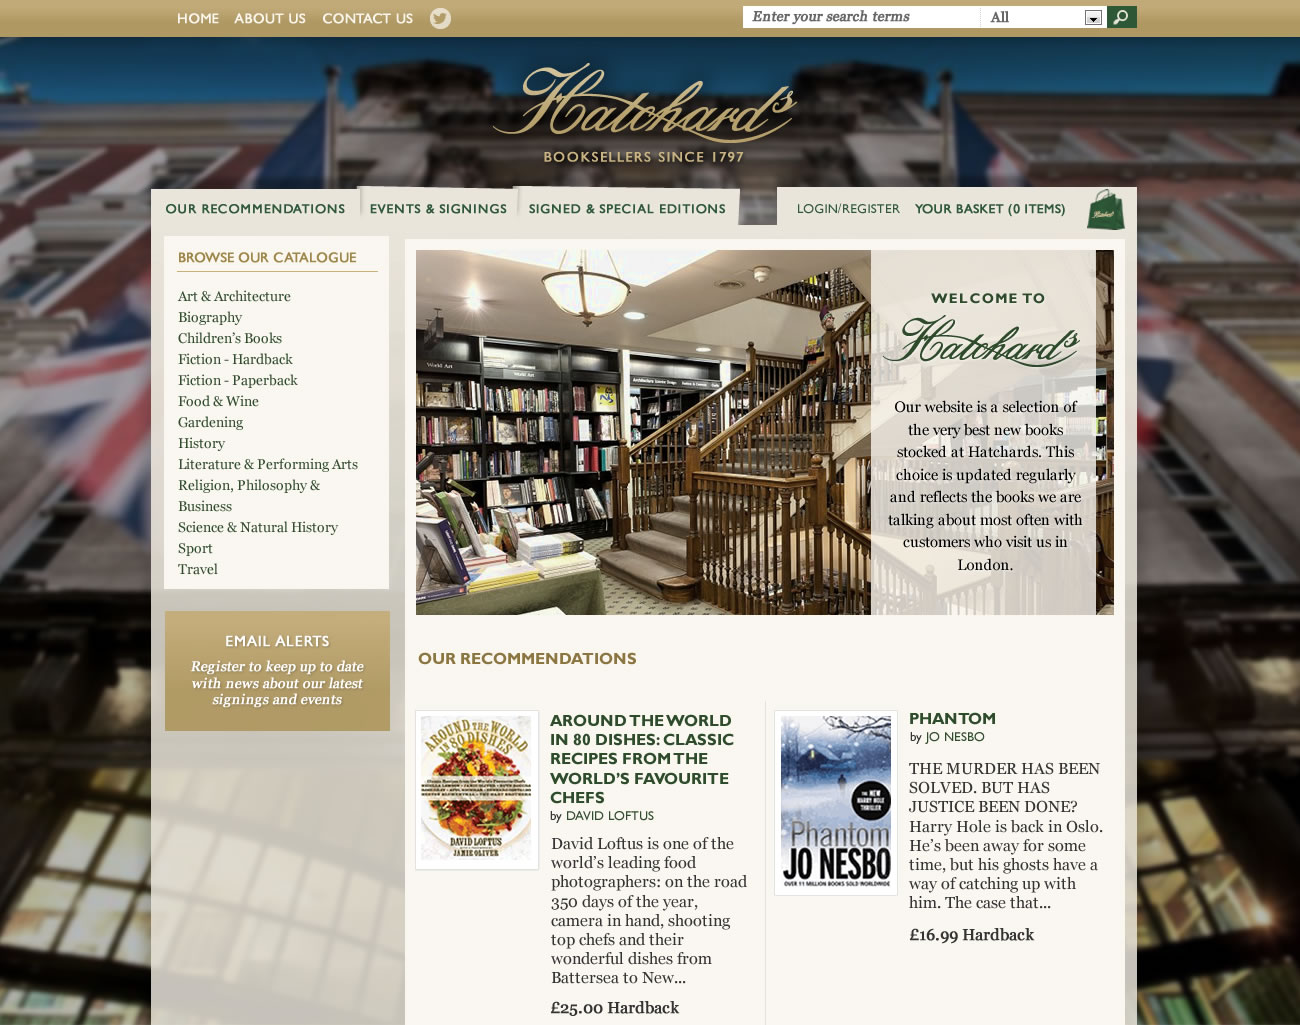 Hatchards e-commerce bookshop